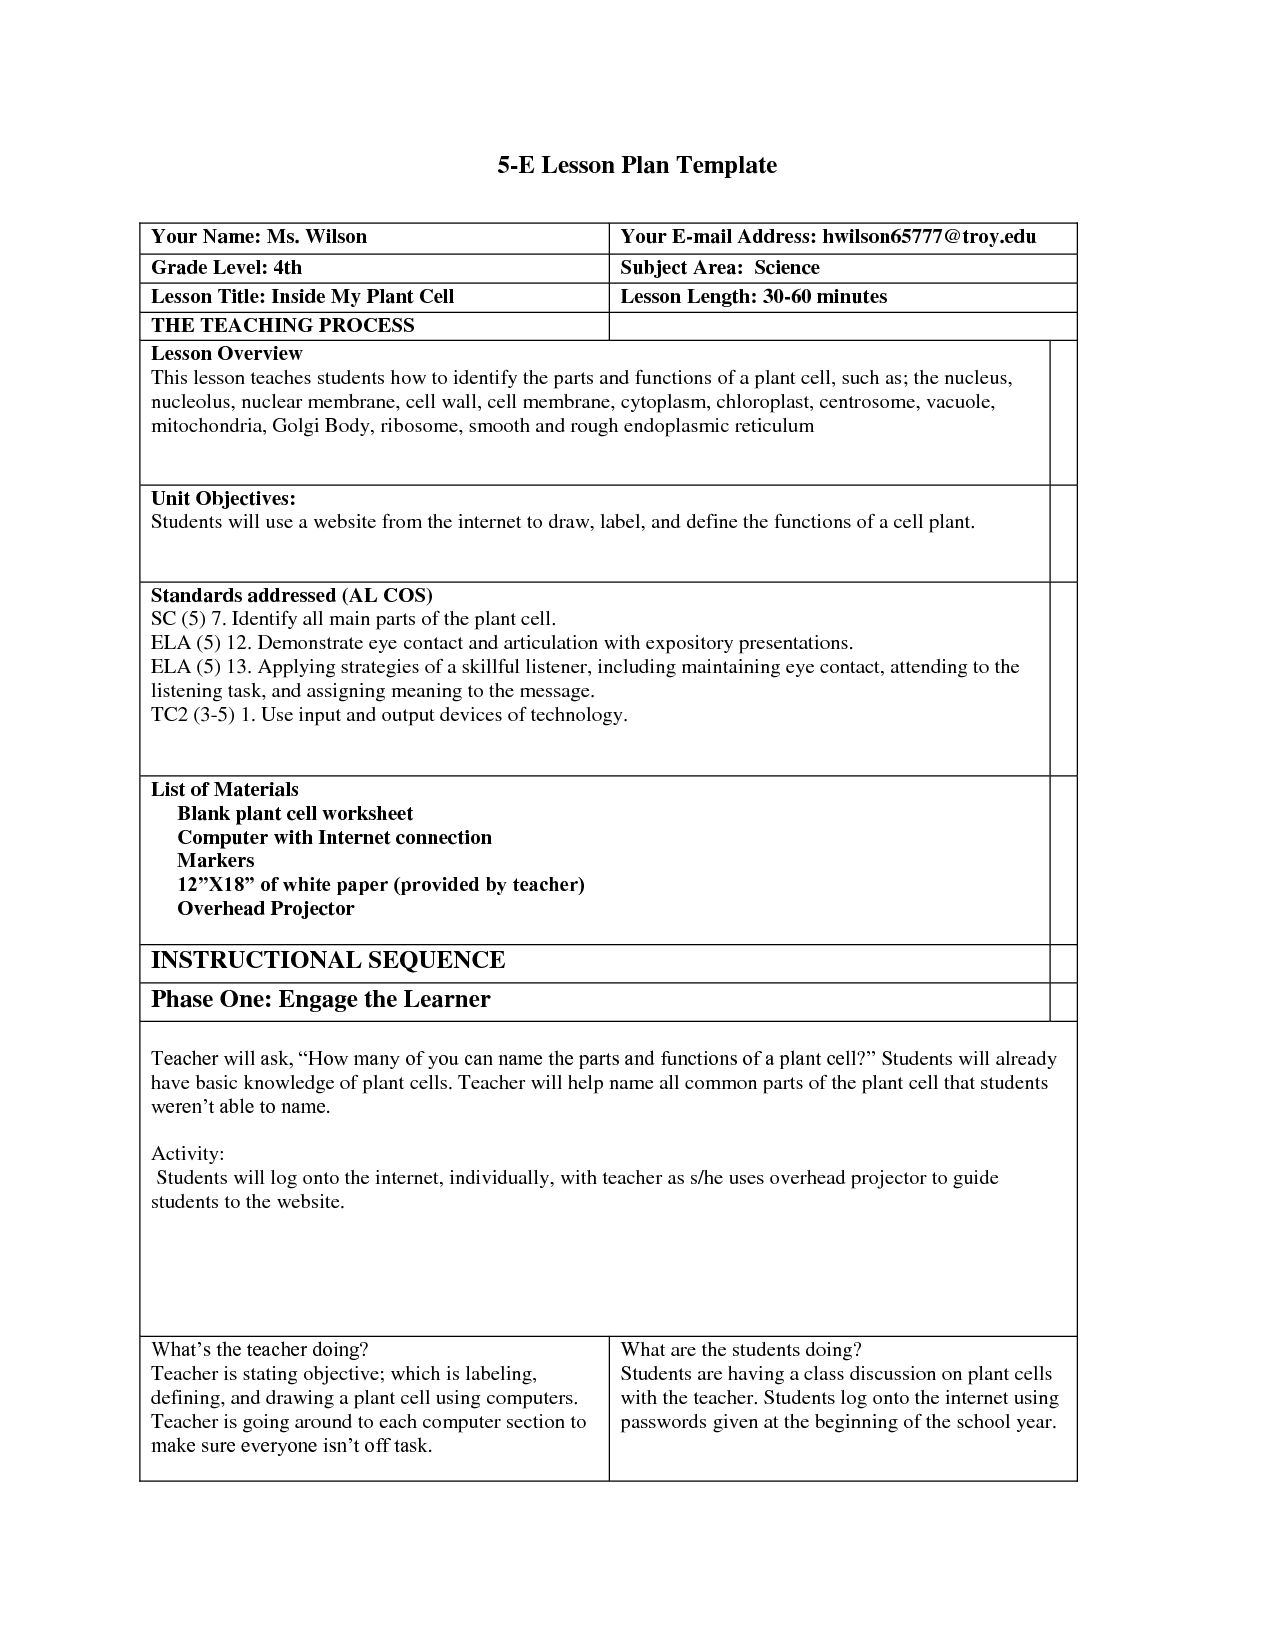 scope of work template Lesson plan templates, Lessons